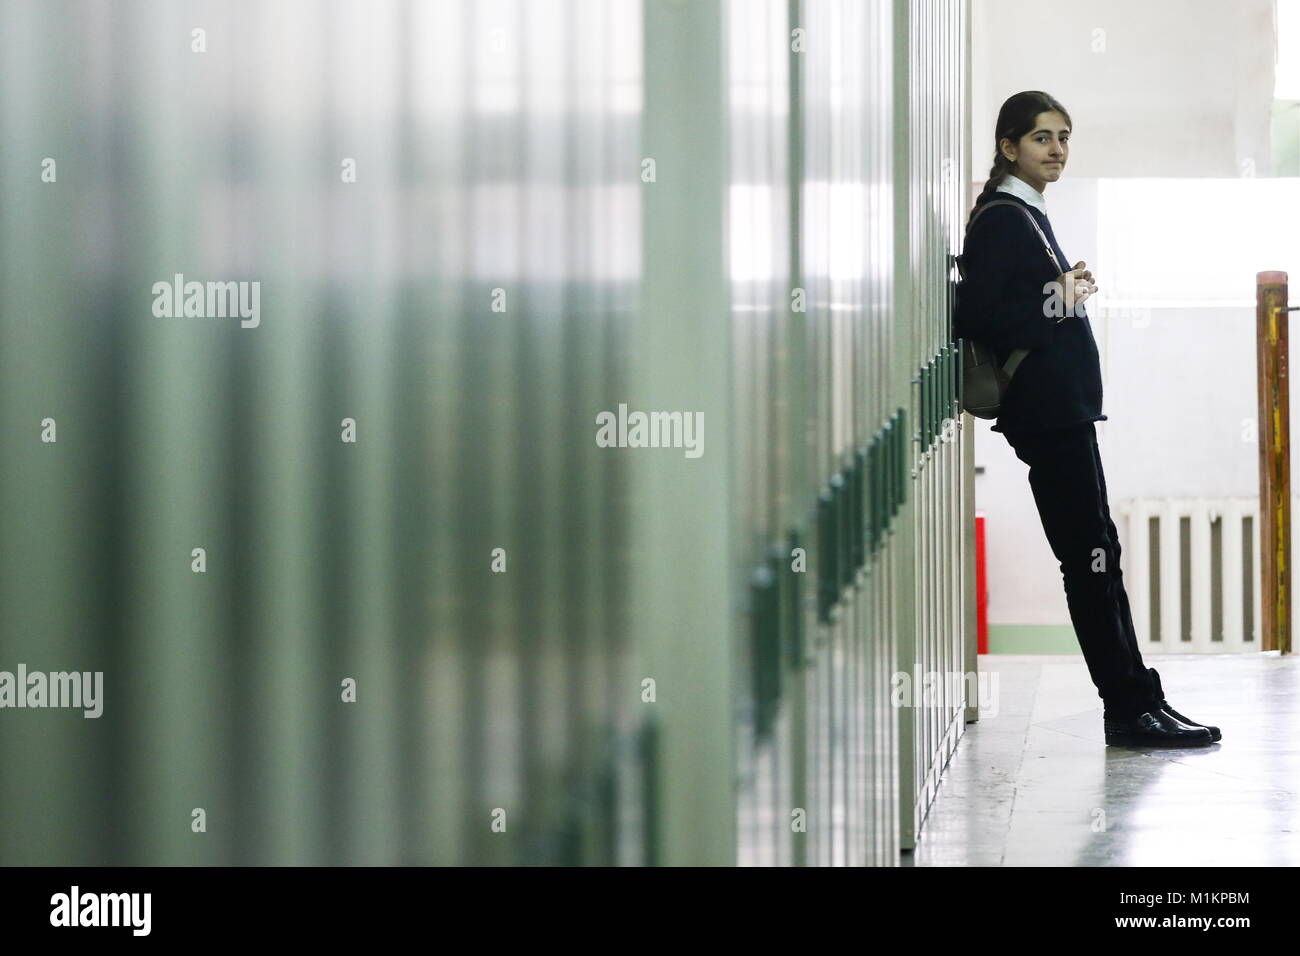 MAKHACHKALA, RUSSIA - JANUARY 30, 2018: A student at the Centre for Gifted Children, a boarding high school in the - Stock Image